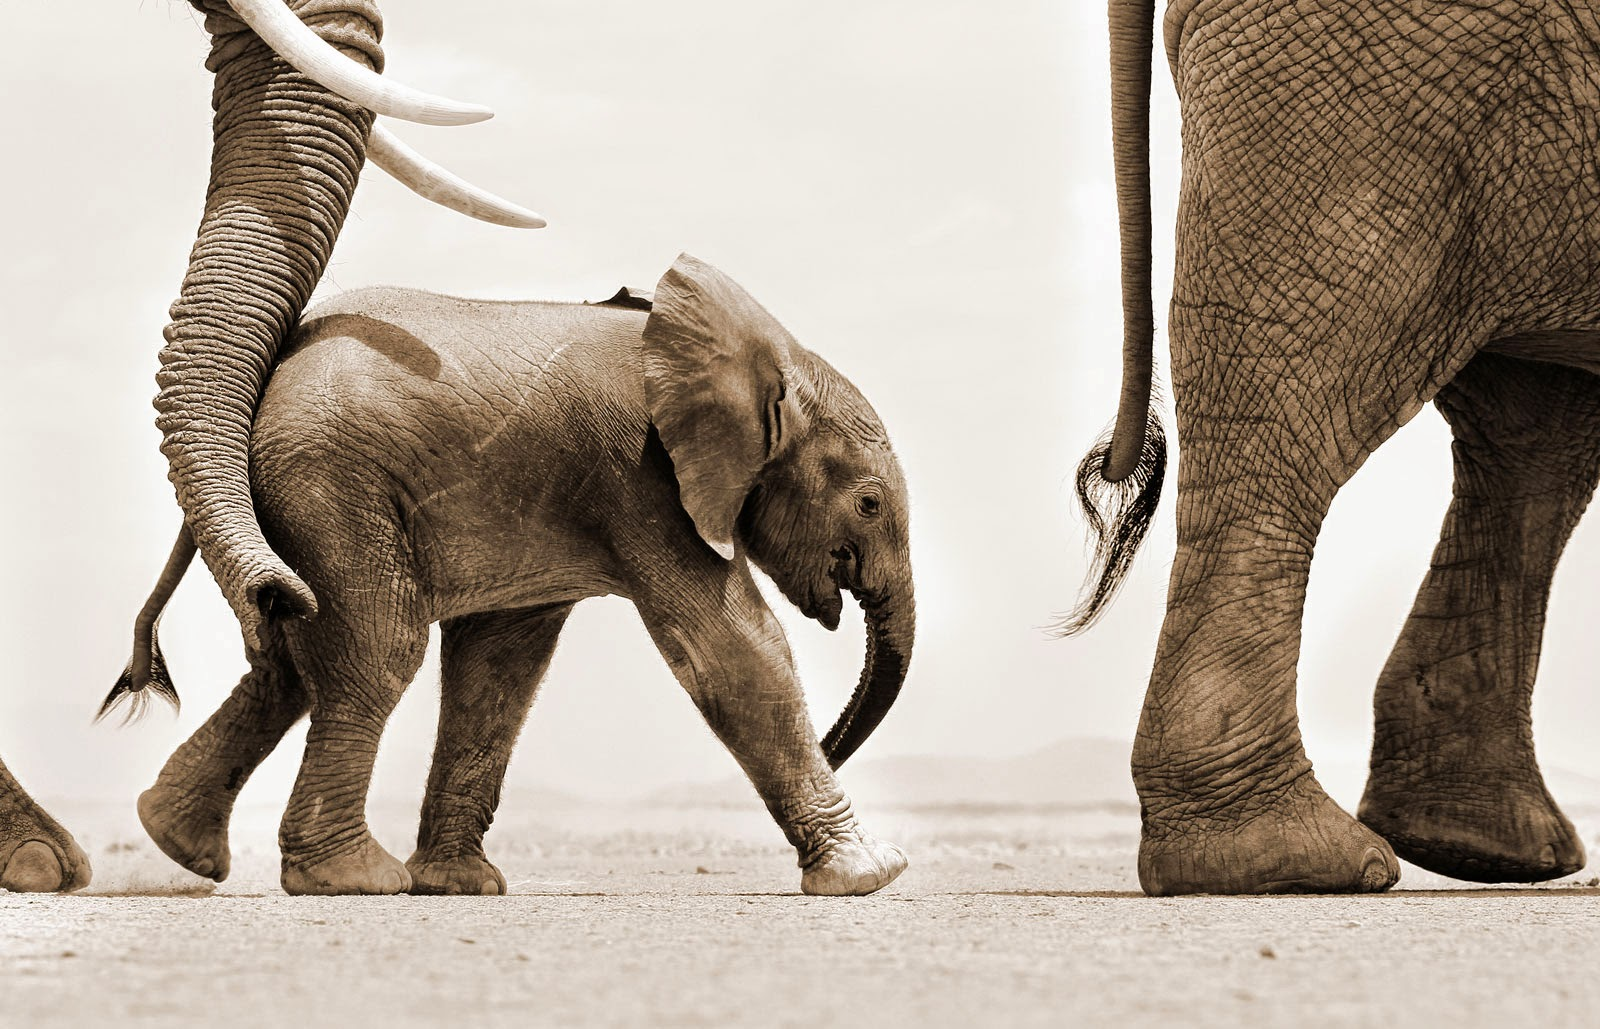 http://magazine.africageographic.com/weekly/issue-6/world-elephant-day-gallery/